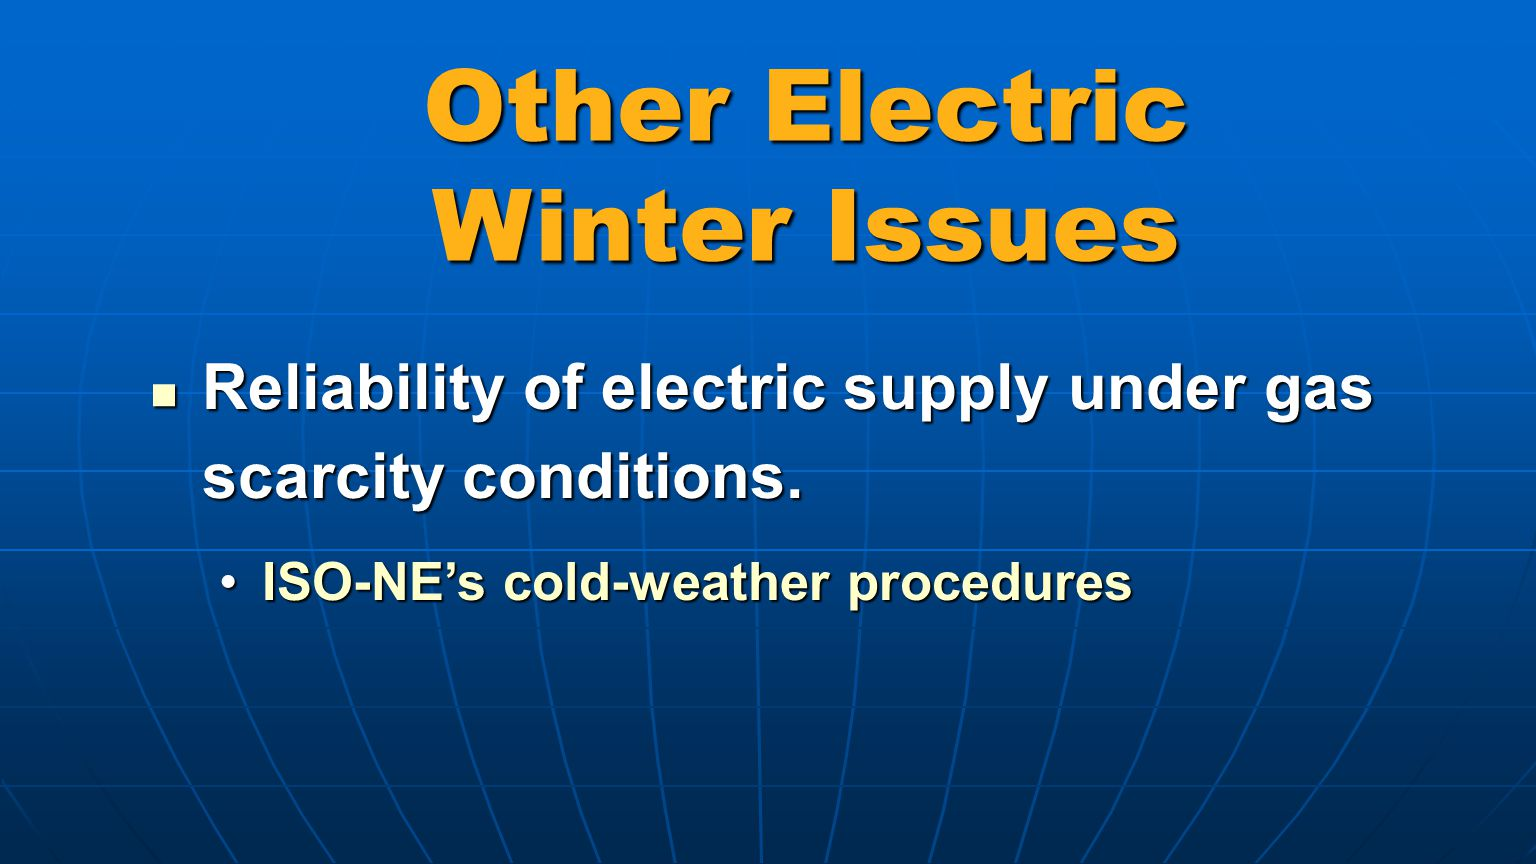 Other Electric Winter Issues Reliability of electric supply under gas scarcity conditions.